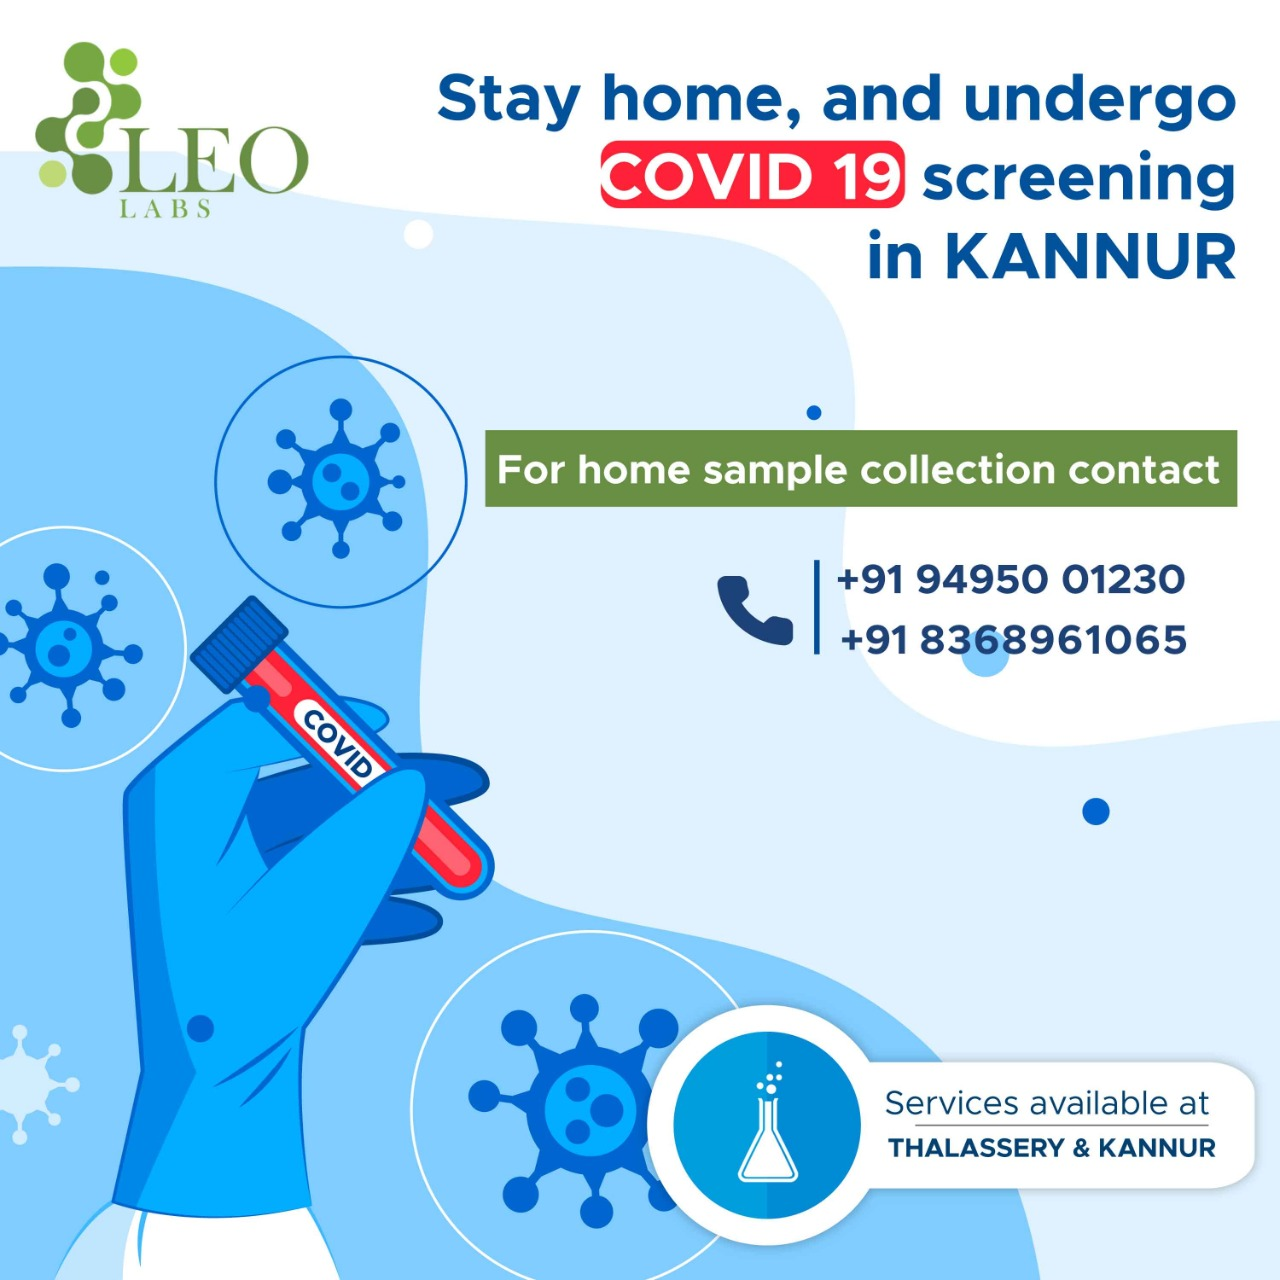 Health check-up lab in Kannur,Covid19 screening in Kannur,diabetic lab in Kannur